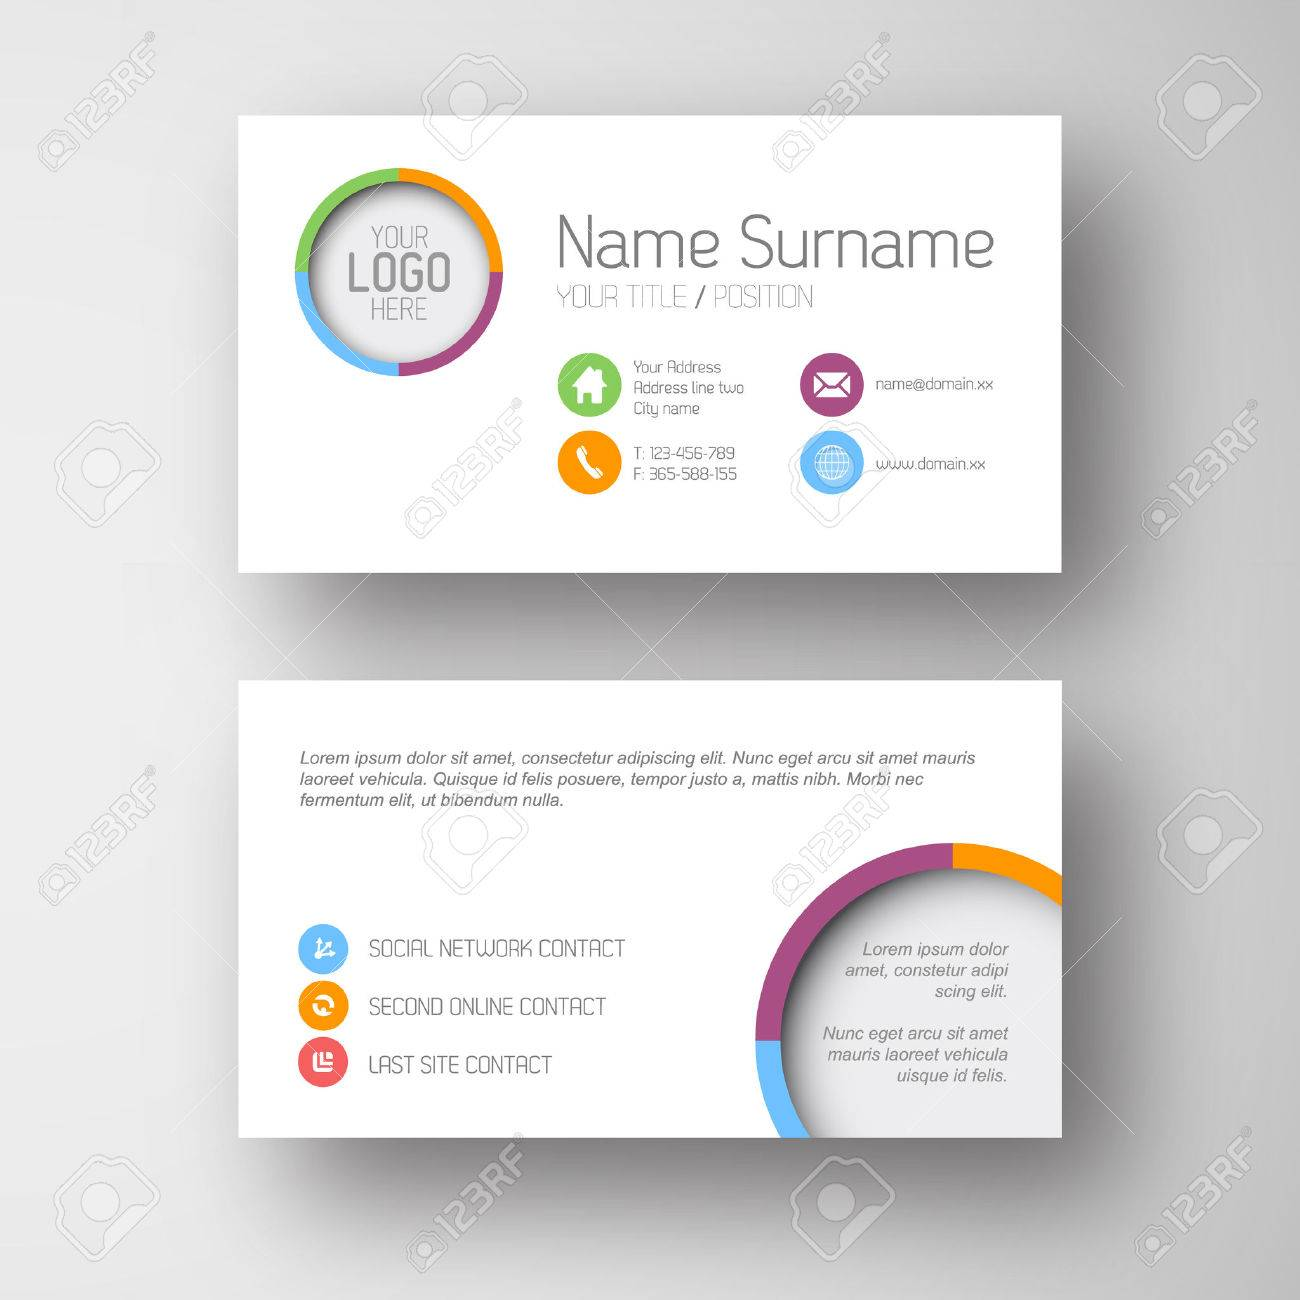 Delighted 1 Inch Hexagon Template Thin 1 Page Resumes Examples Regular 1.25 Button Template 10 Best Resumes Old 10 Tips To Making A Resume Dark100 Dollar Bill Template Modern Simple White Business Card Template With Some Placeholder ..